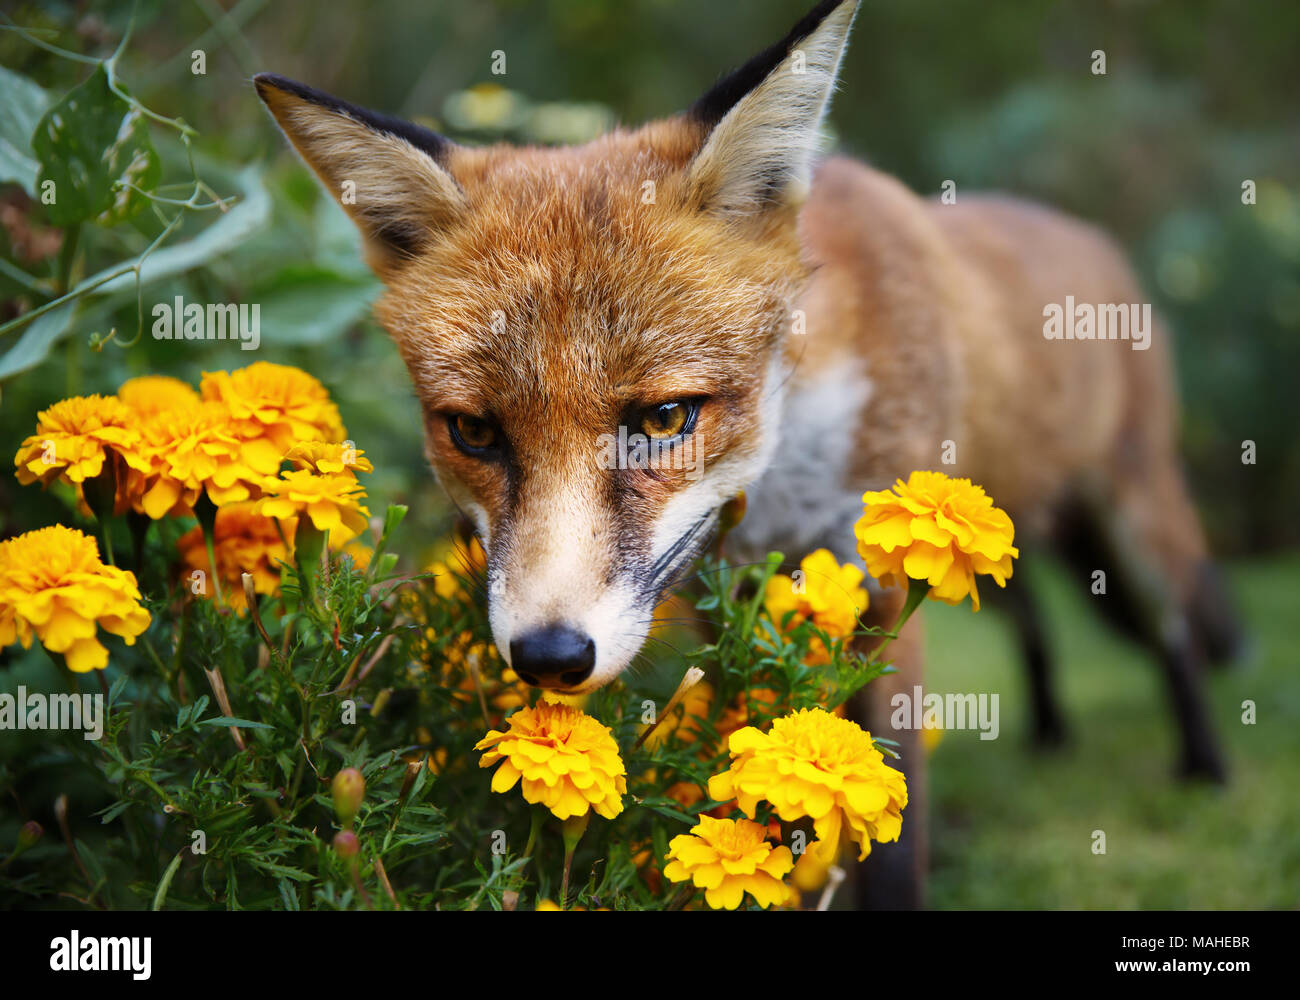 Red fox smelling marigold flowers in the garden, summer in UK. - Stock Image